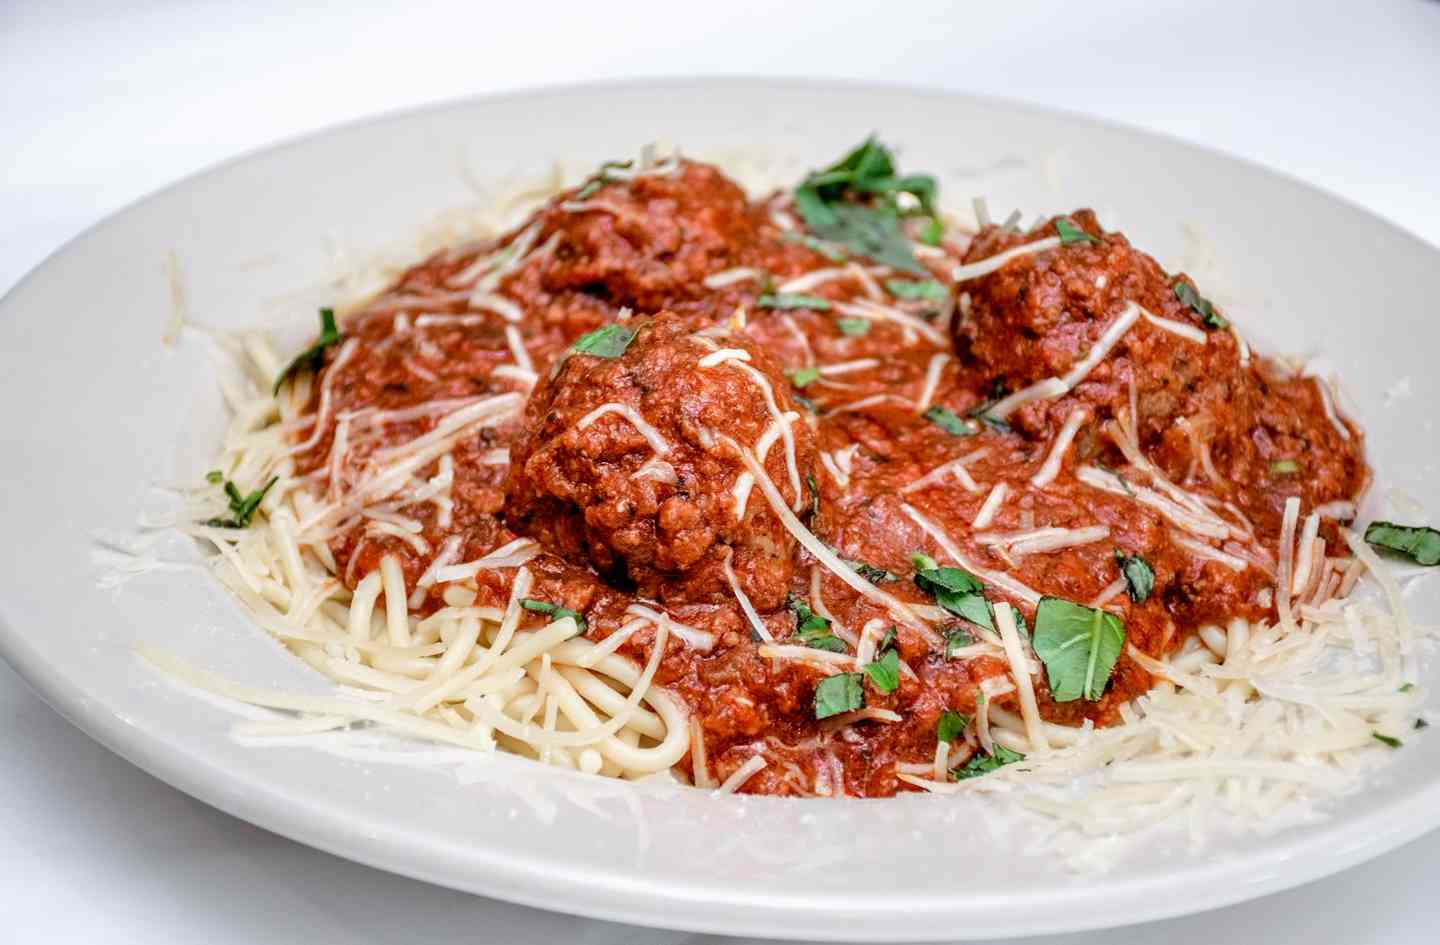 Italian Spaghetti with Meatsauce